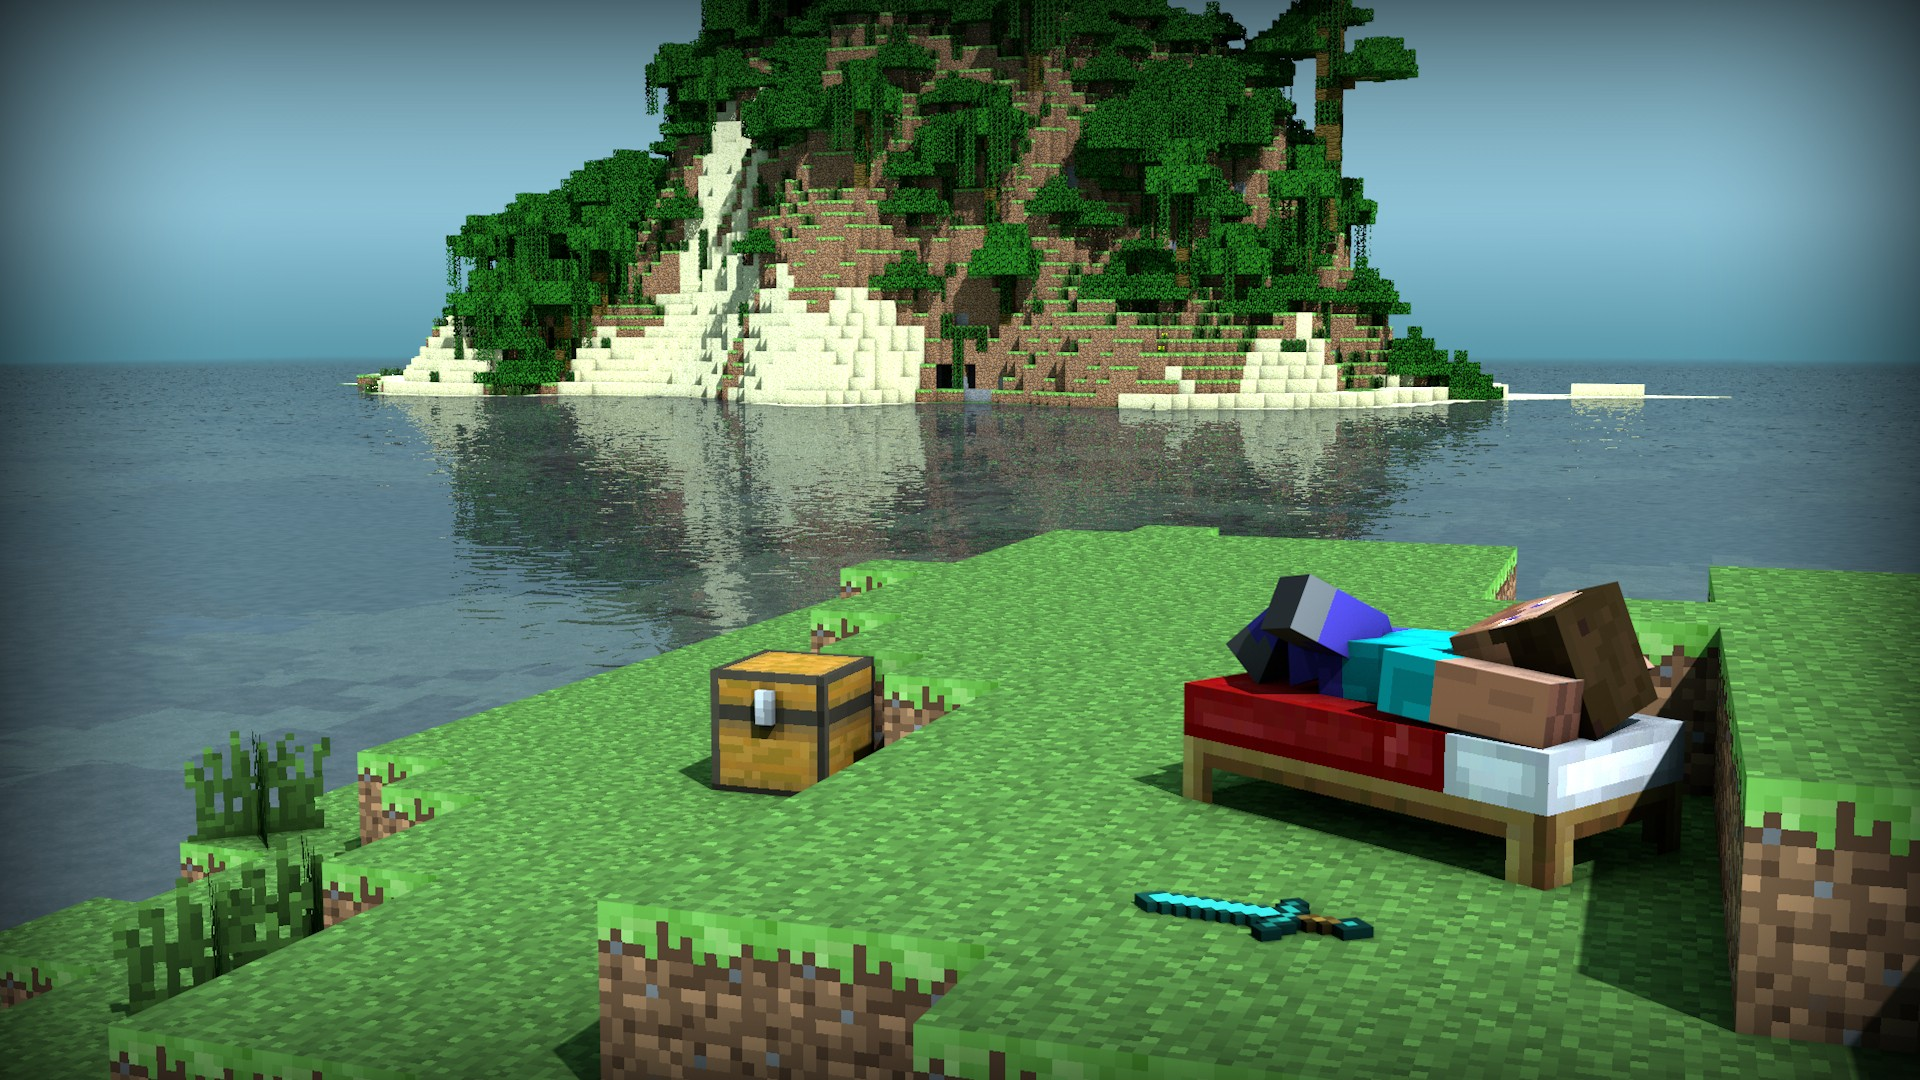 Minecraft HD Wallpaper